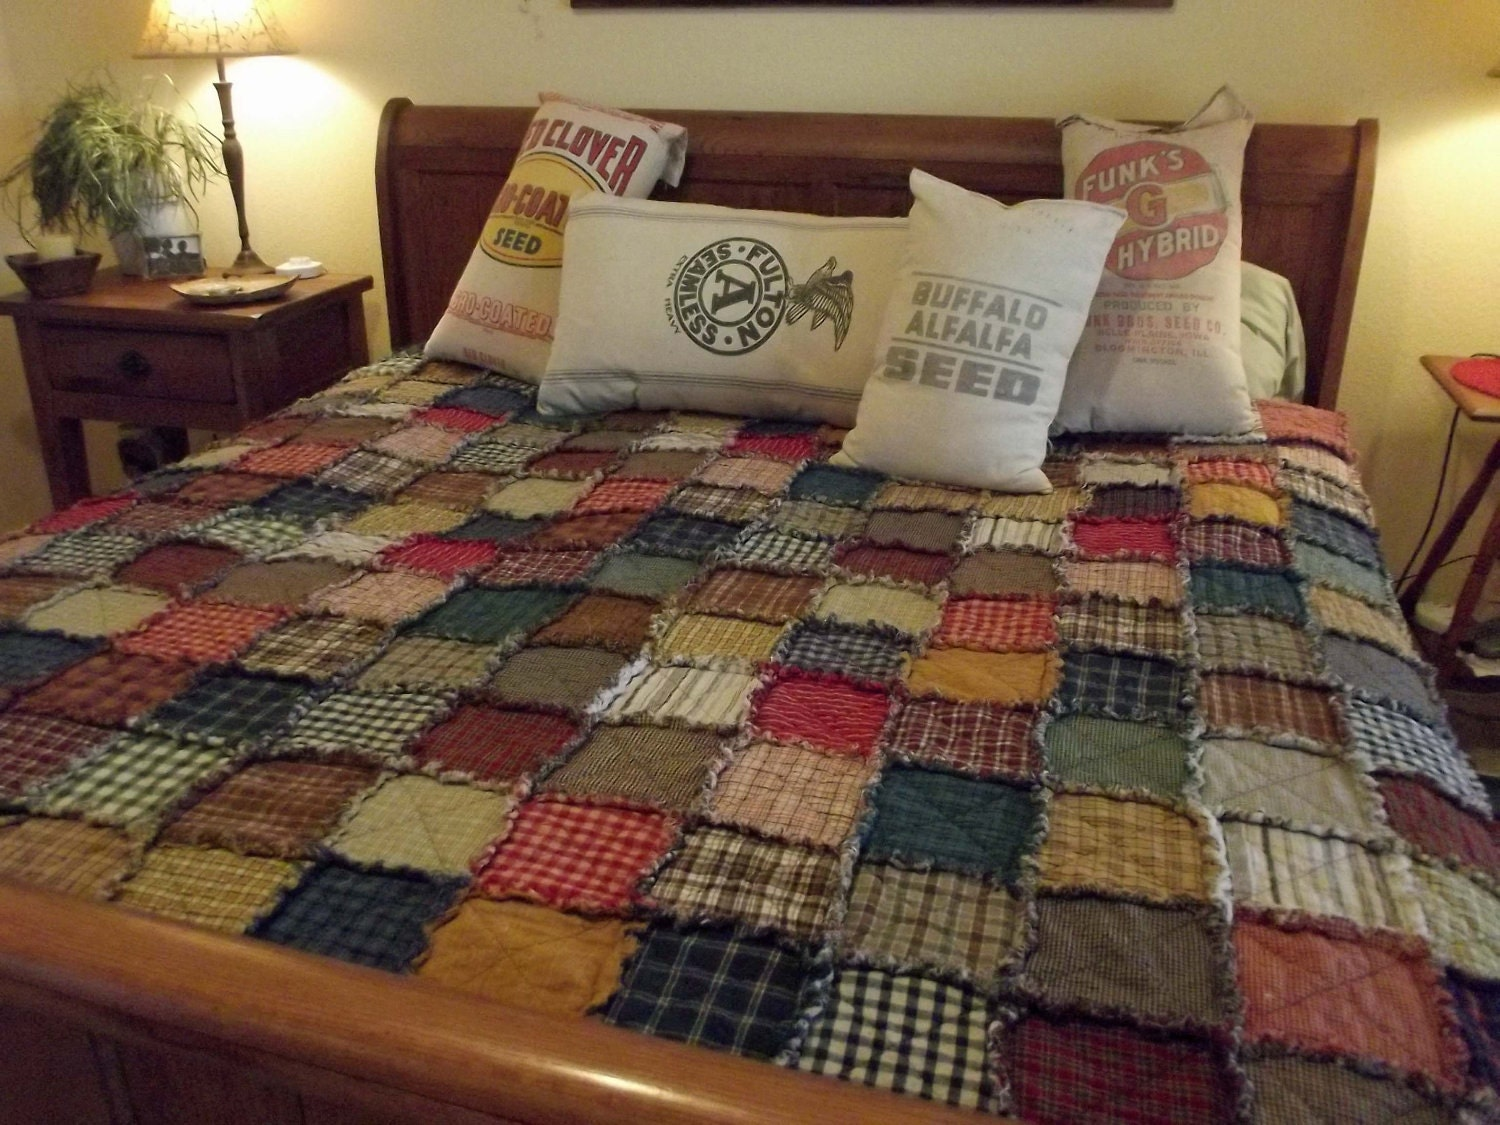 Crib size quilts for sale - Queen Size Patchwork Rag Quilt Made To Order Rustic Reversible Homemade Quilt Farmhouse Country Quilt Primitive Quilt Queen Quilt